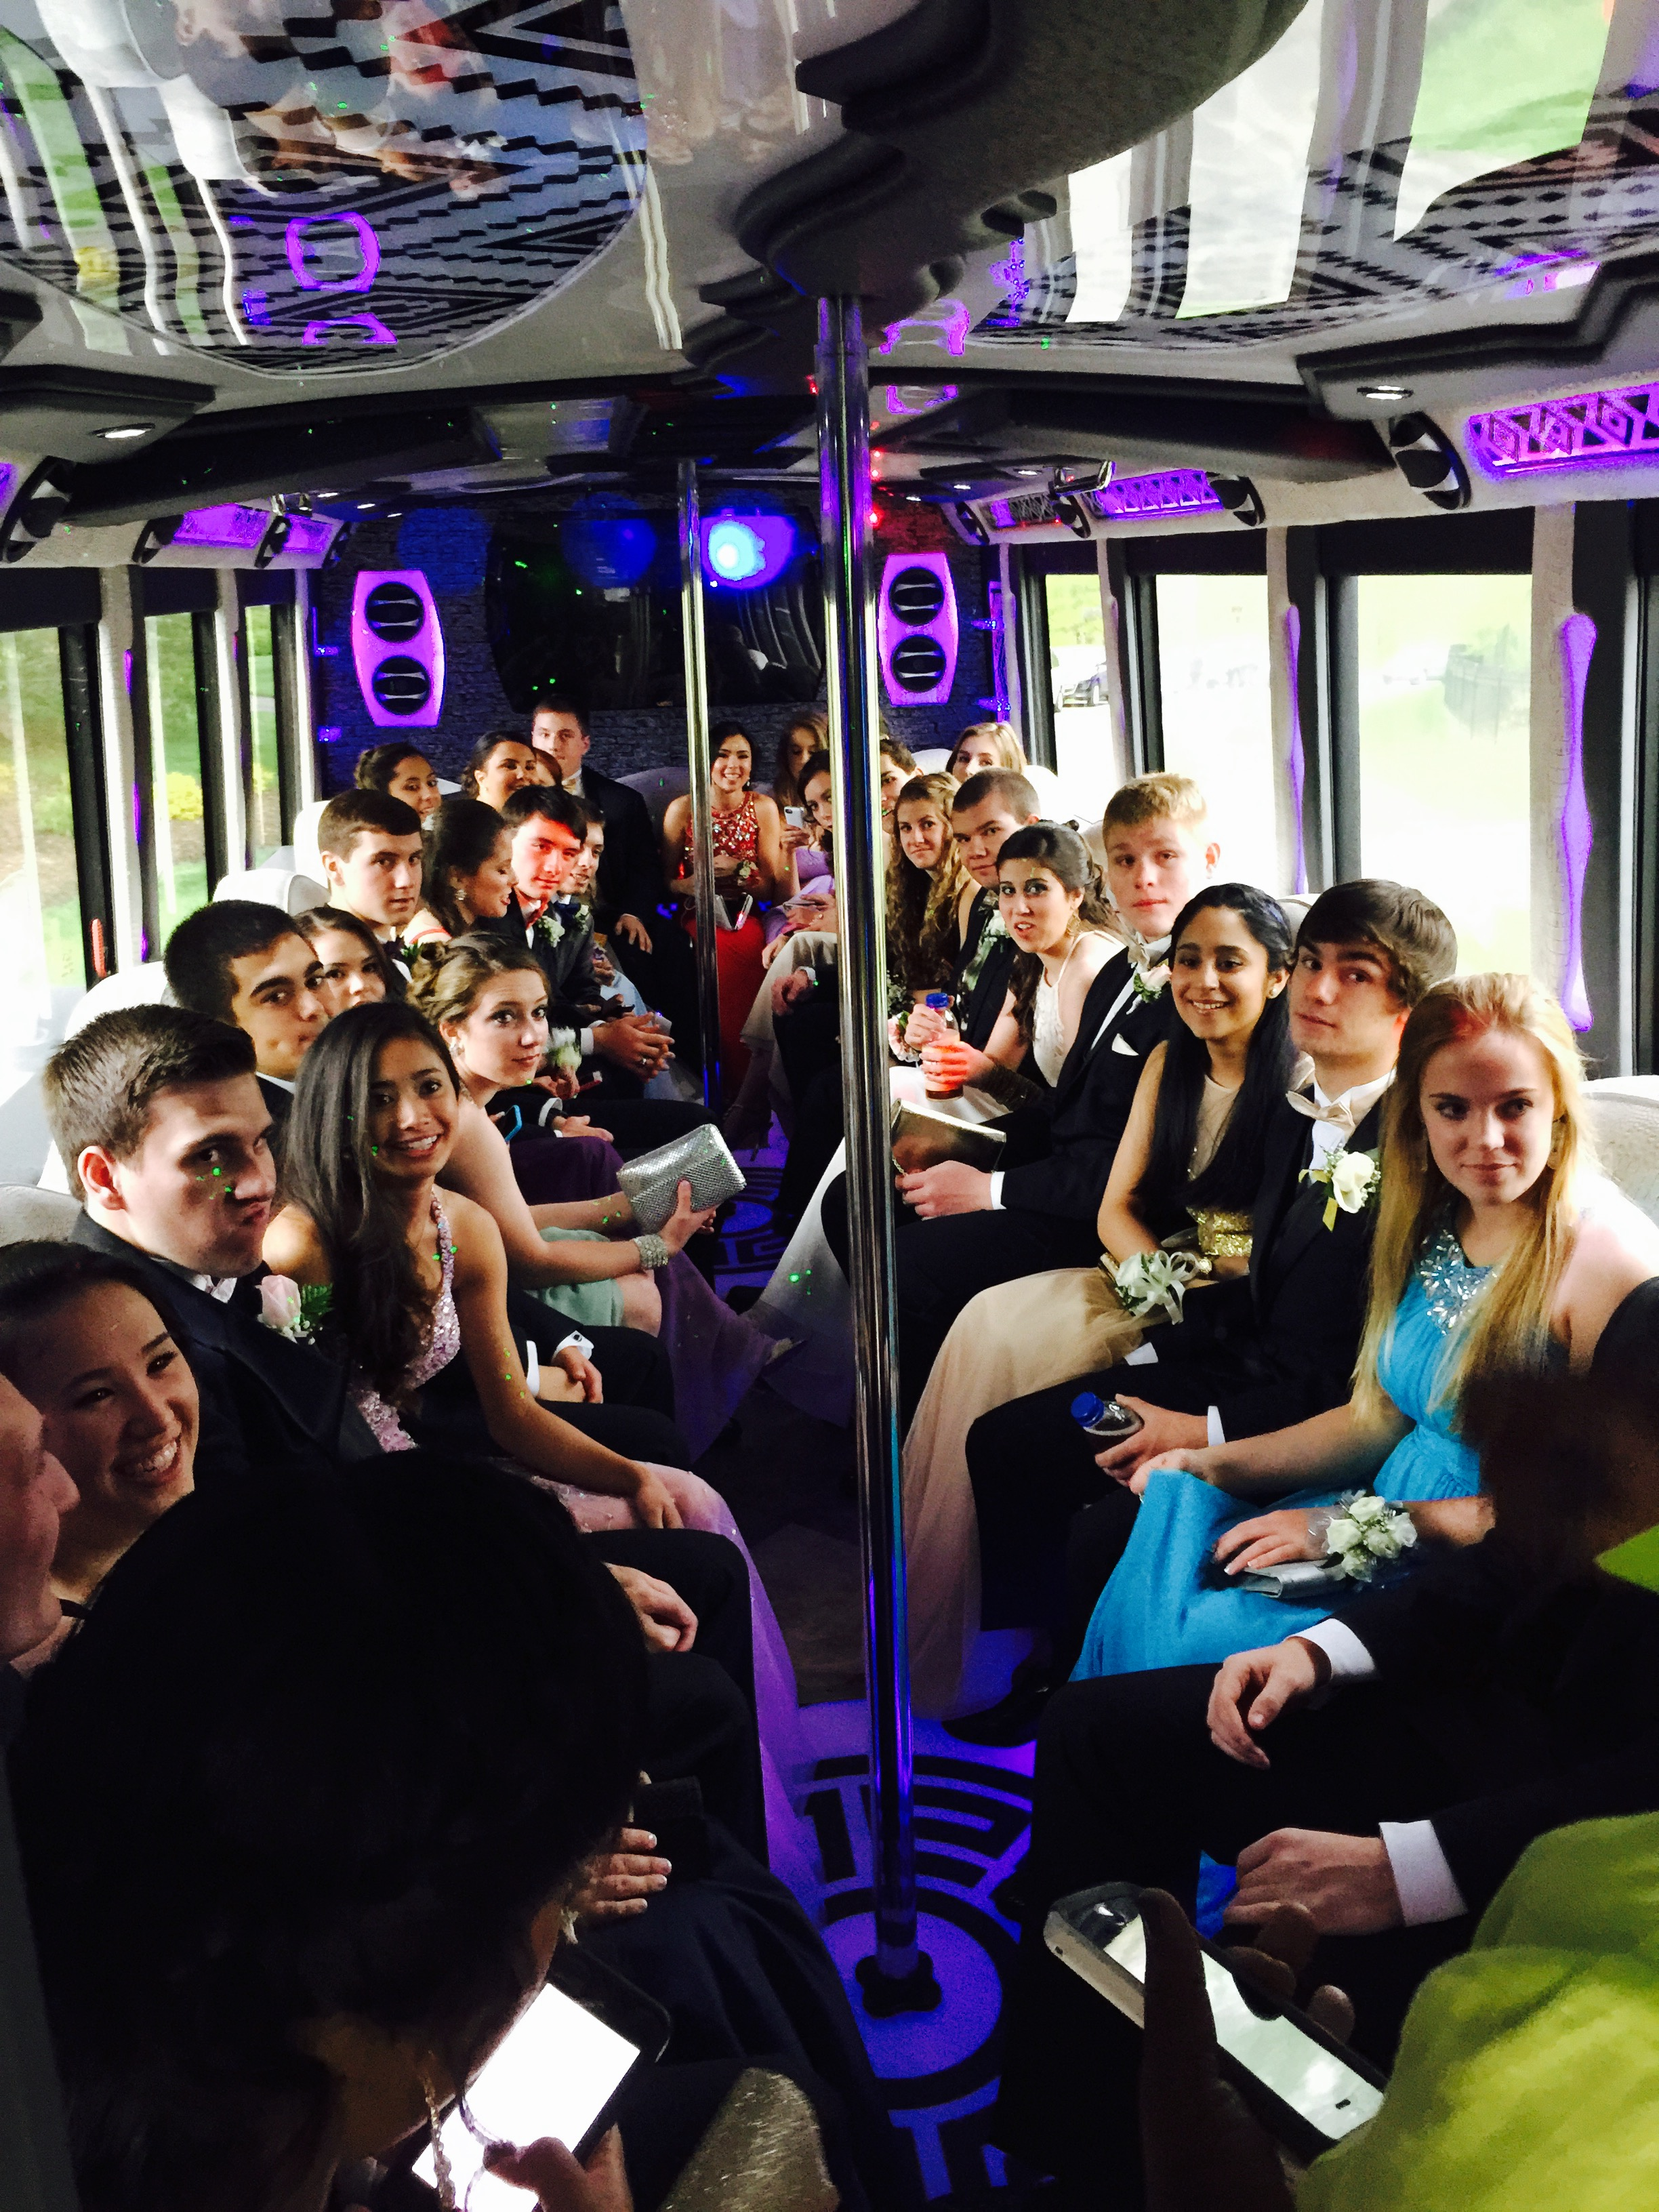 Limo Prom American Eagle Limo And Party Bus Prom And Homecoming Limousines